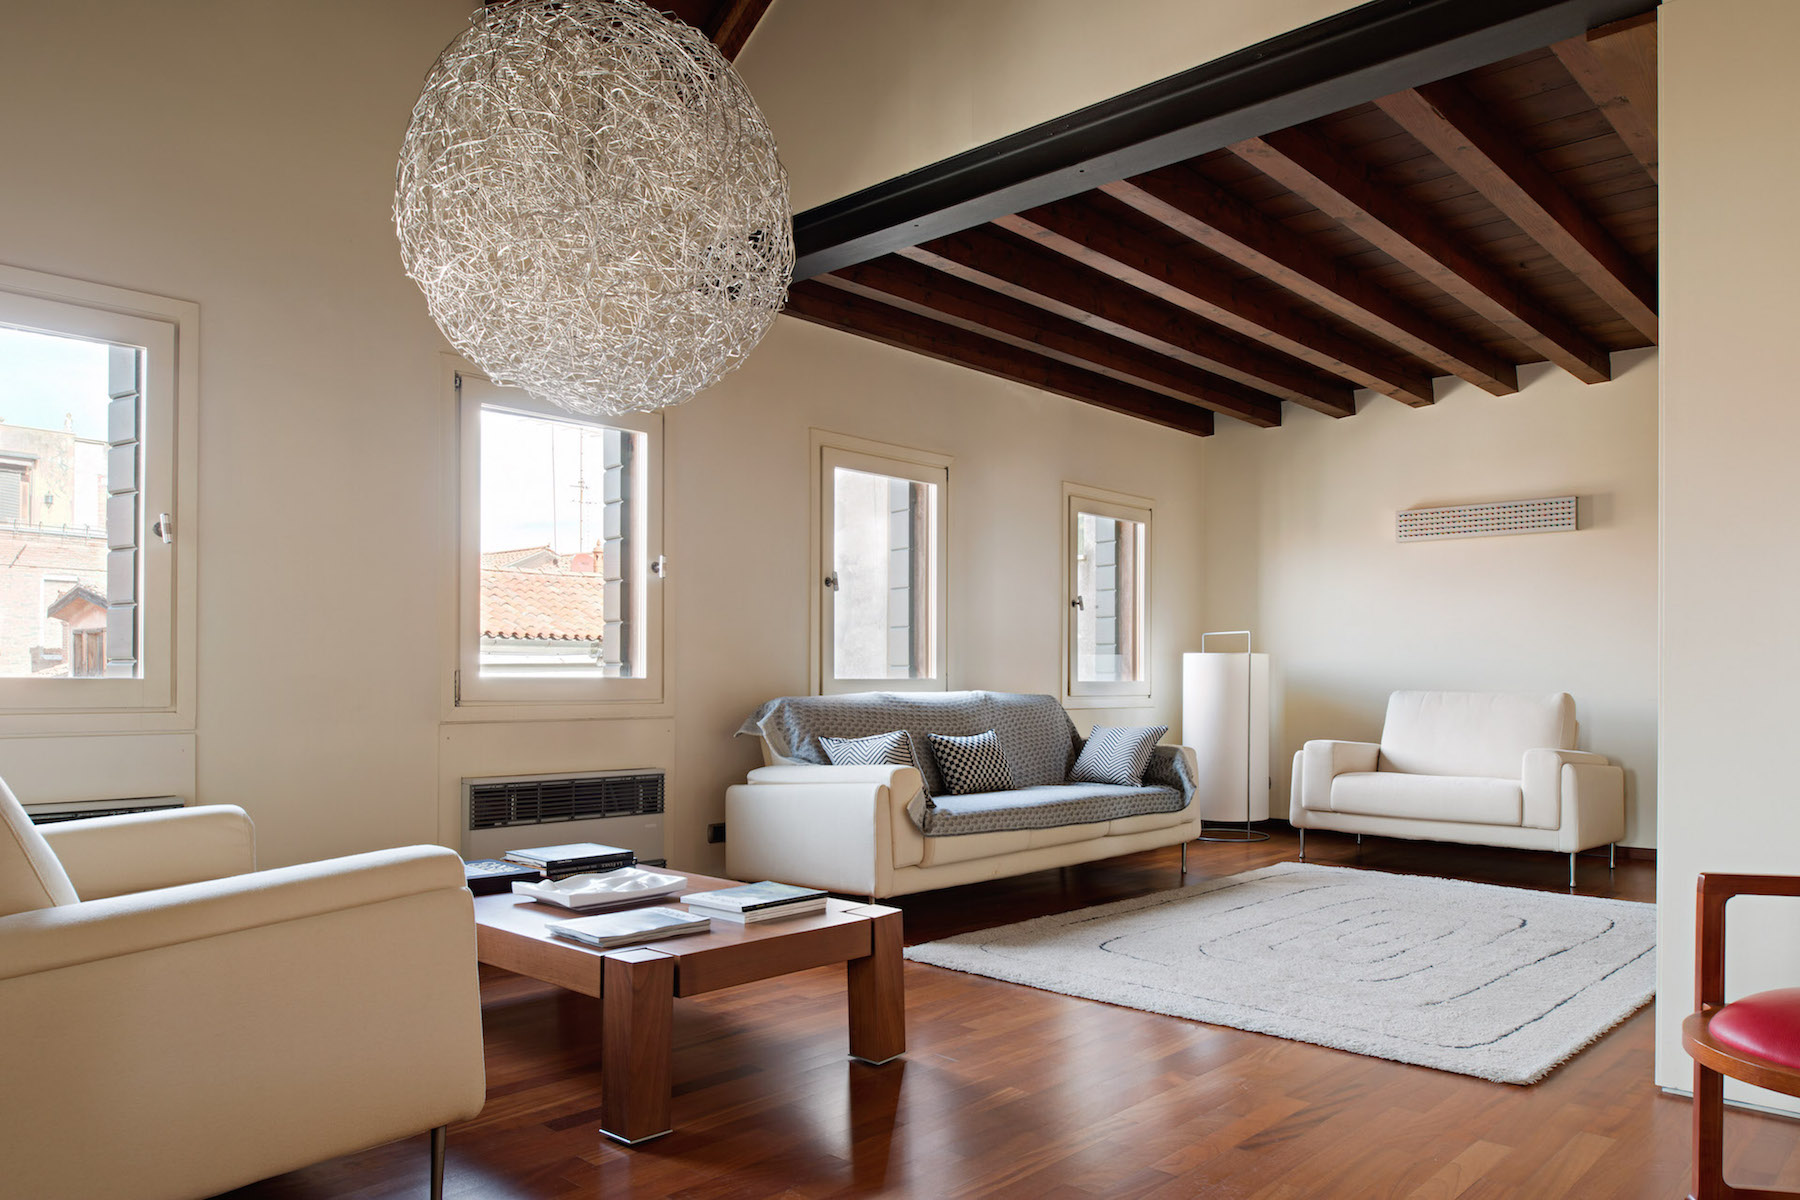 Single Family Home for Sale at Guggenheim Terrace Venice Venice, Venice 30123 Italy